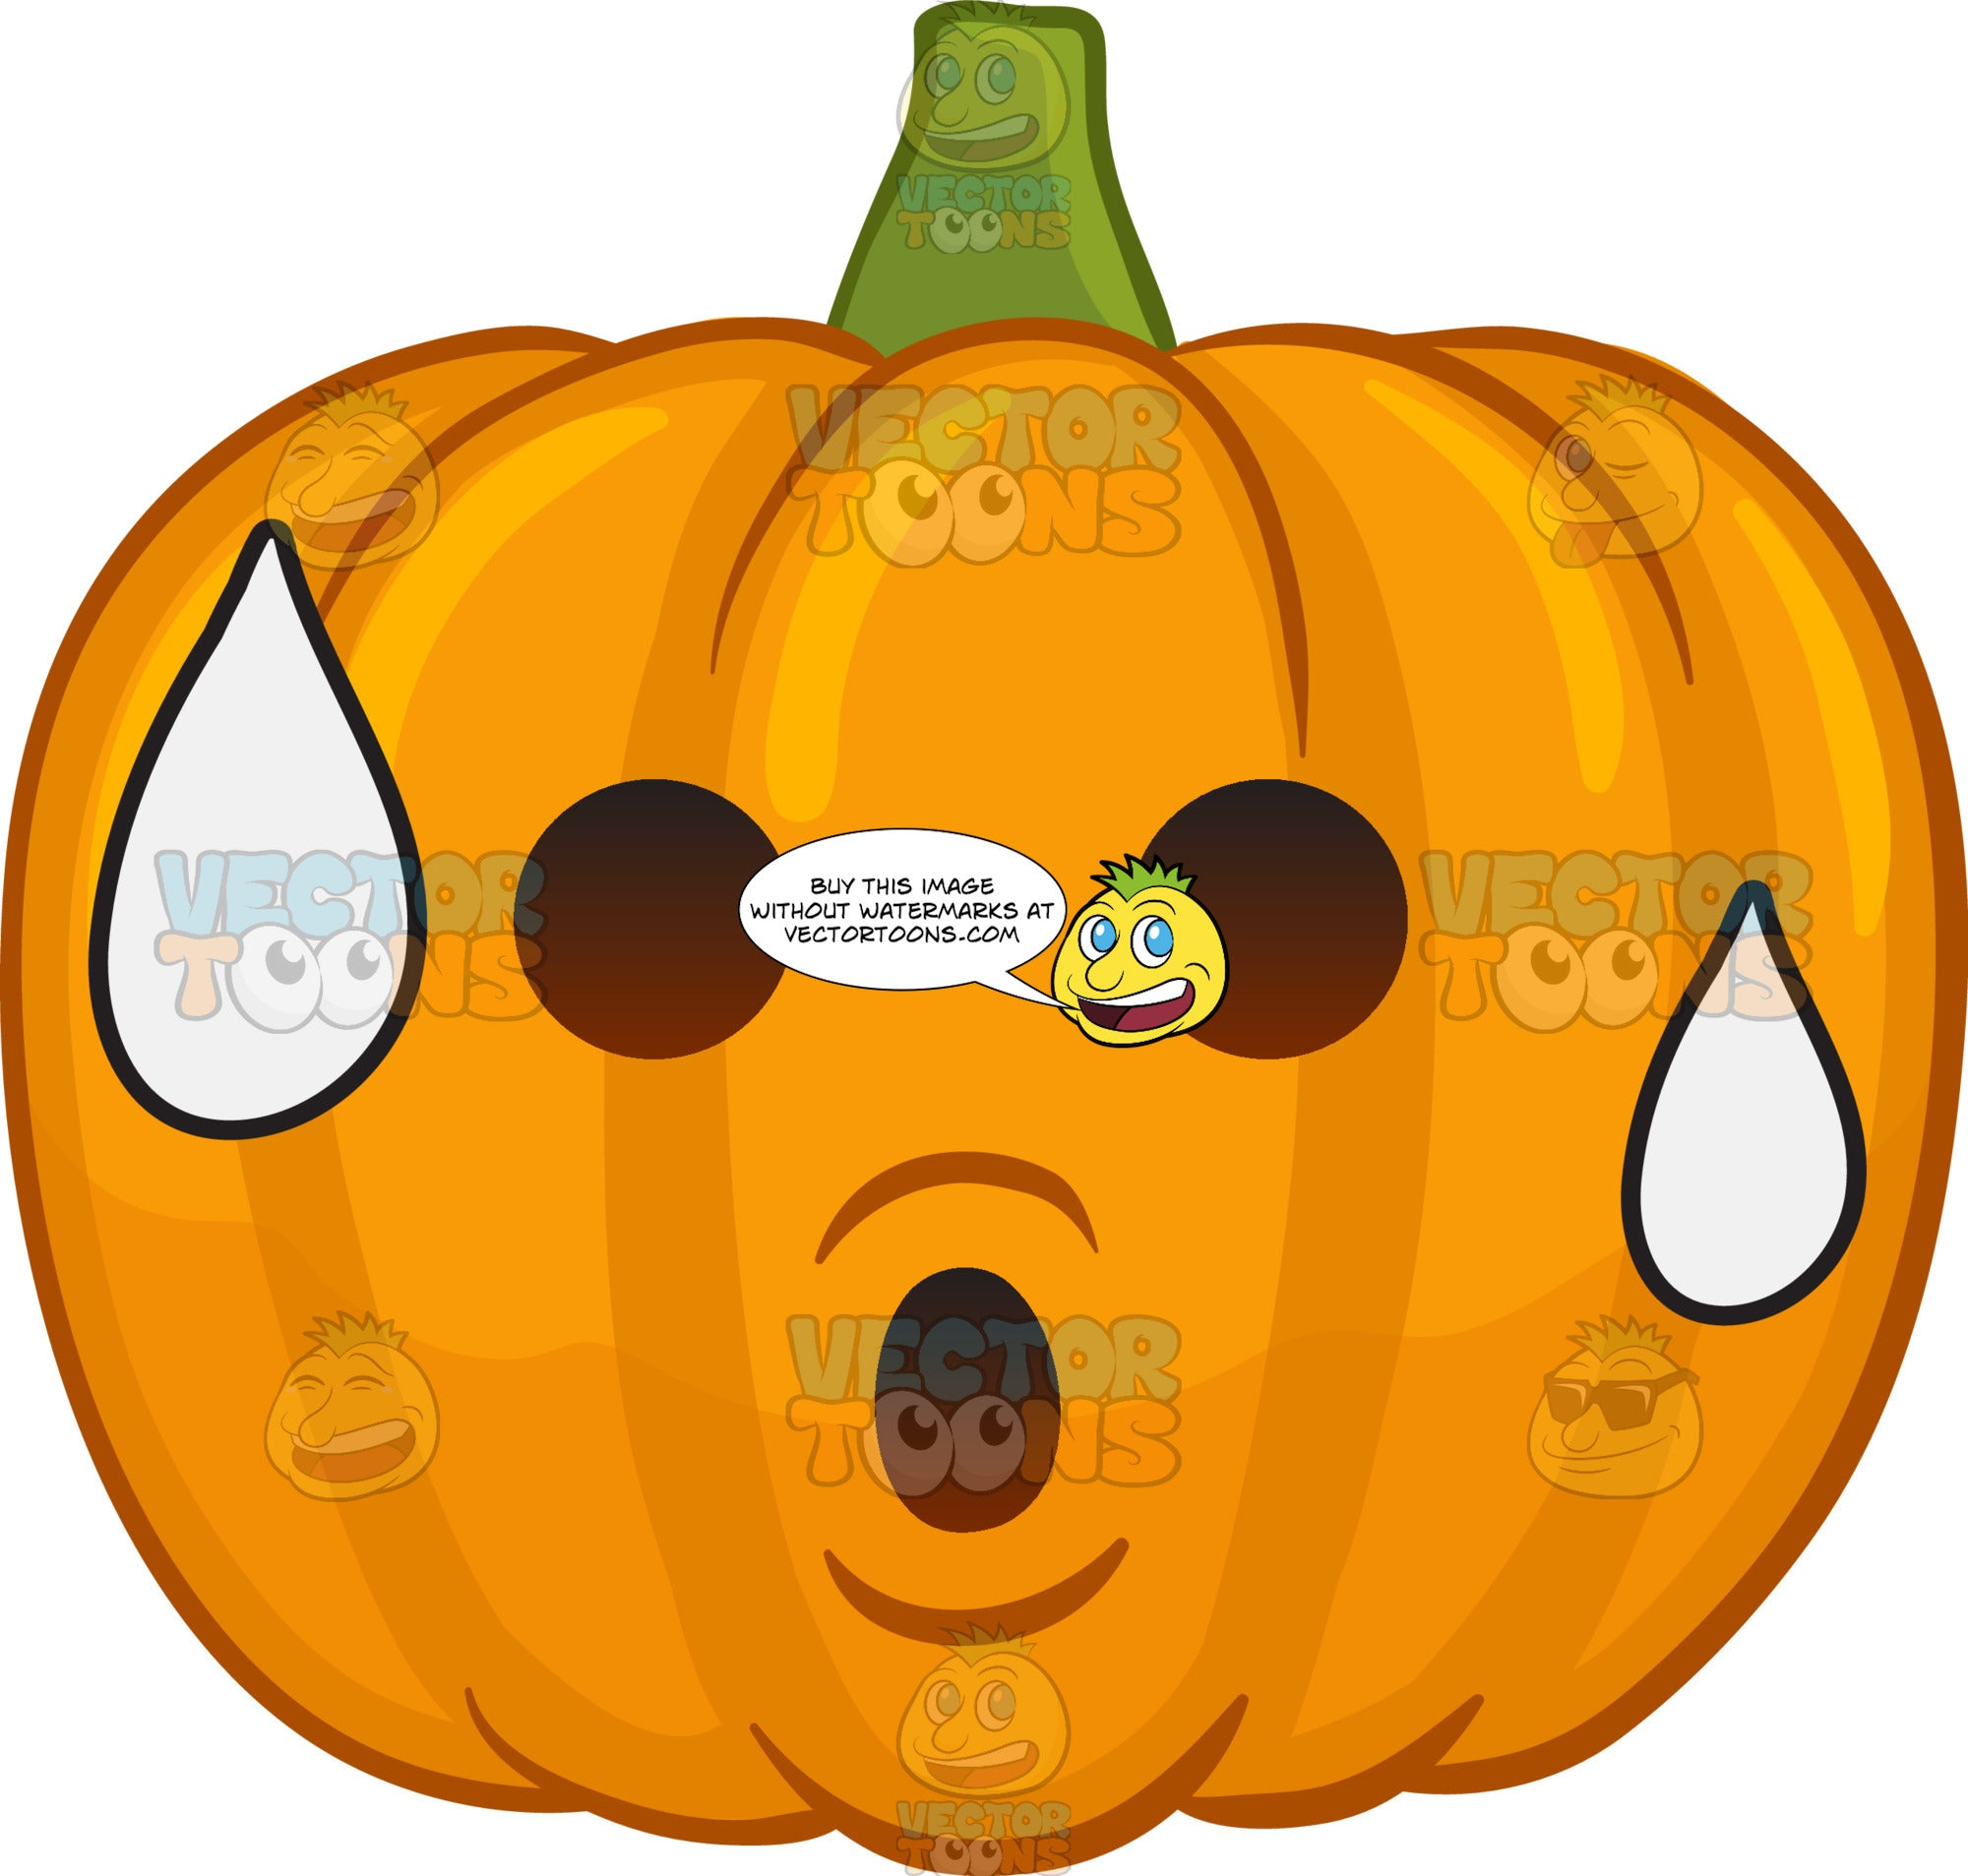 A Sweating Halloween Pumpkin